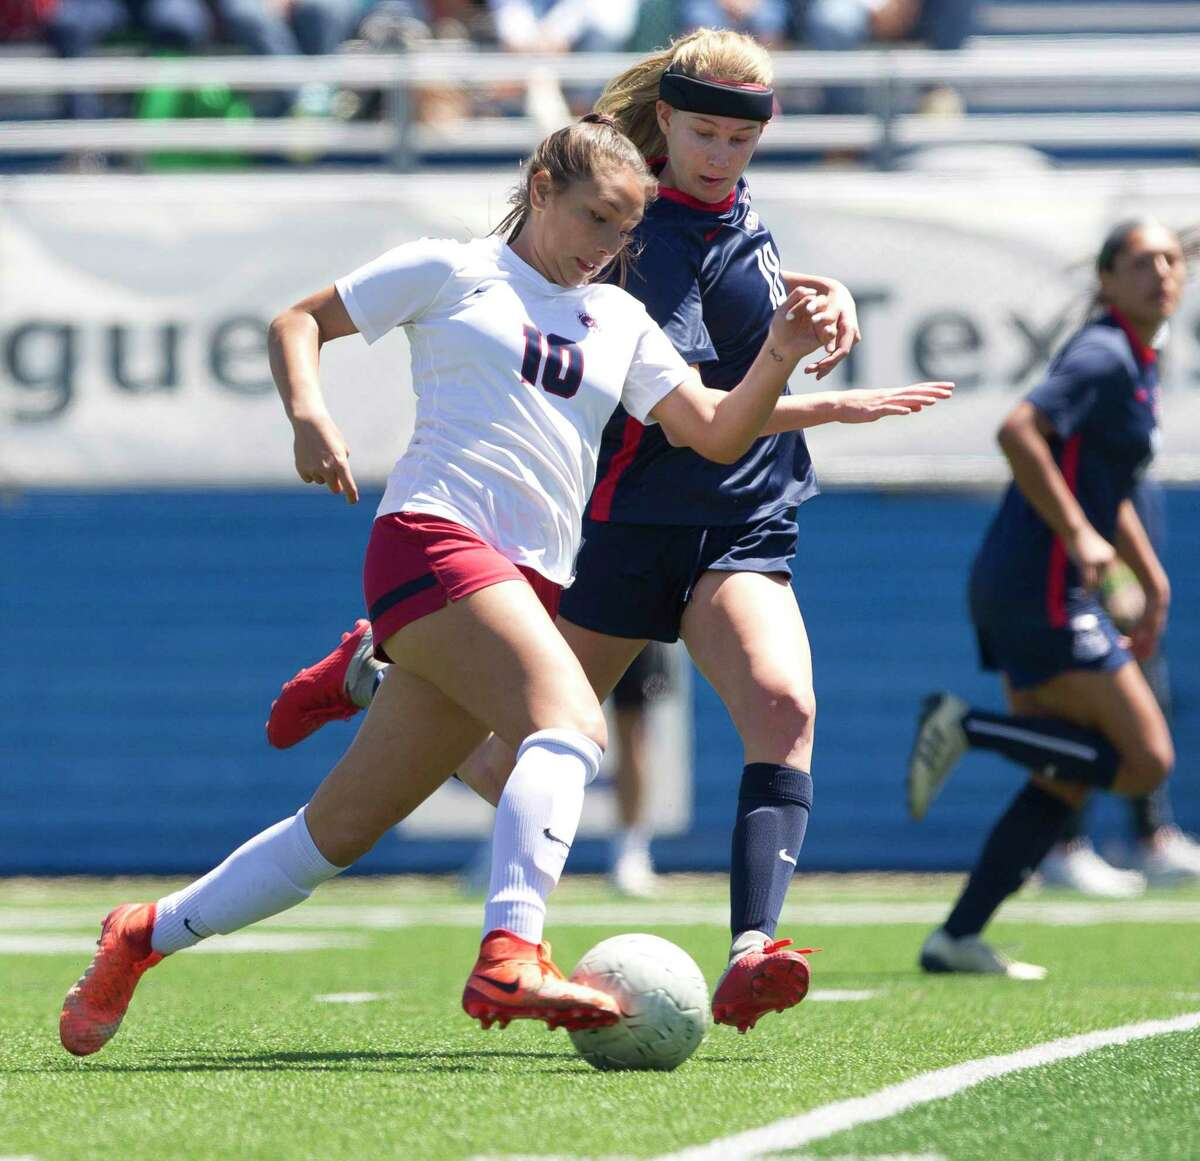 Katy Tompkins forward Barbara Olivieri (10) dribbles the ball under pressure from Allen defender Cassandra Taylor (18) in the first period of a Class 6A girls state semifinal match during the UIL State Soccer Championships at Birkelbach Field, Friday, April 19, 2019, in Georgetown.